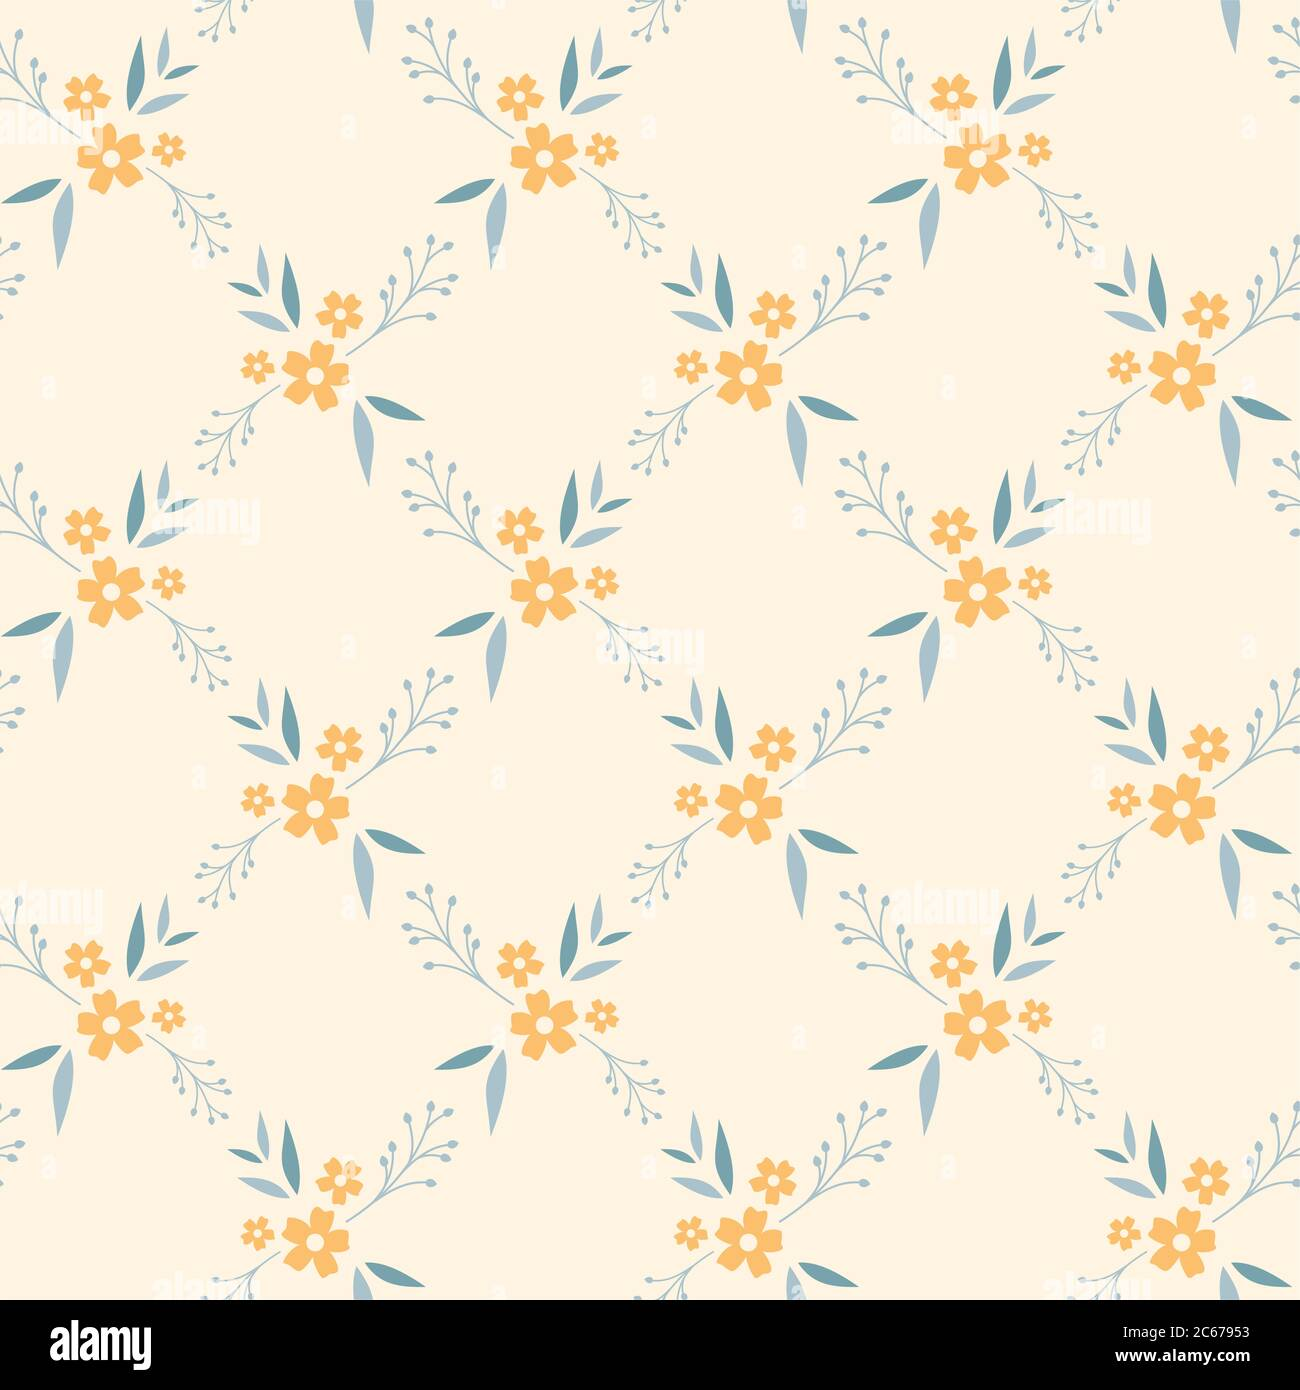 Floral Print Fabric High Resolution Stock Photography And Images Alamy